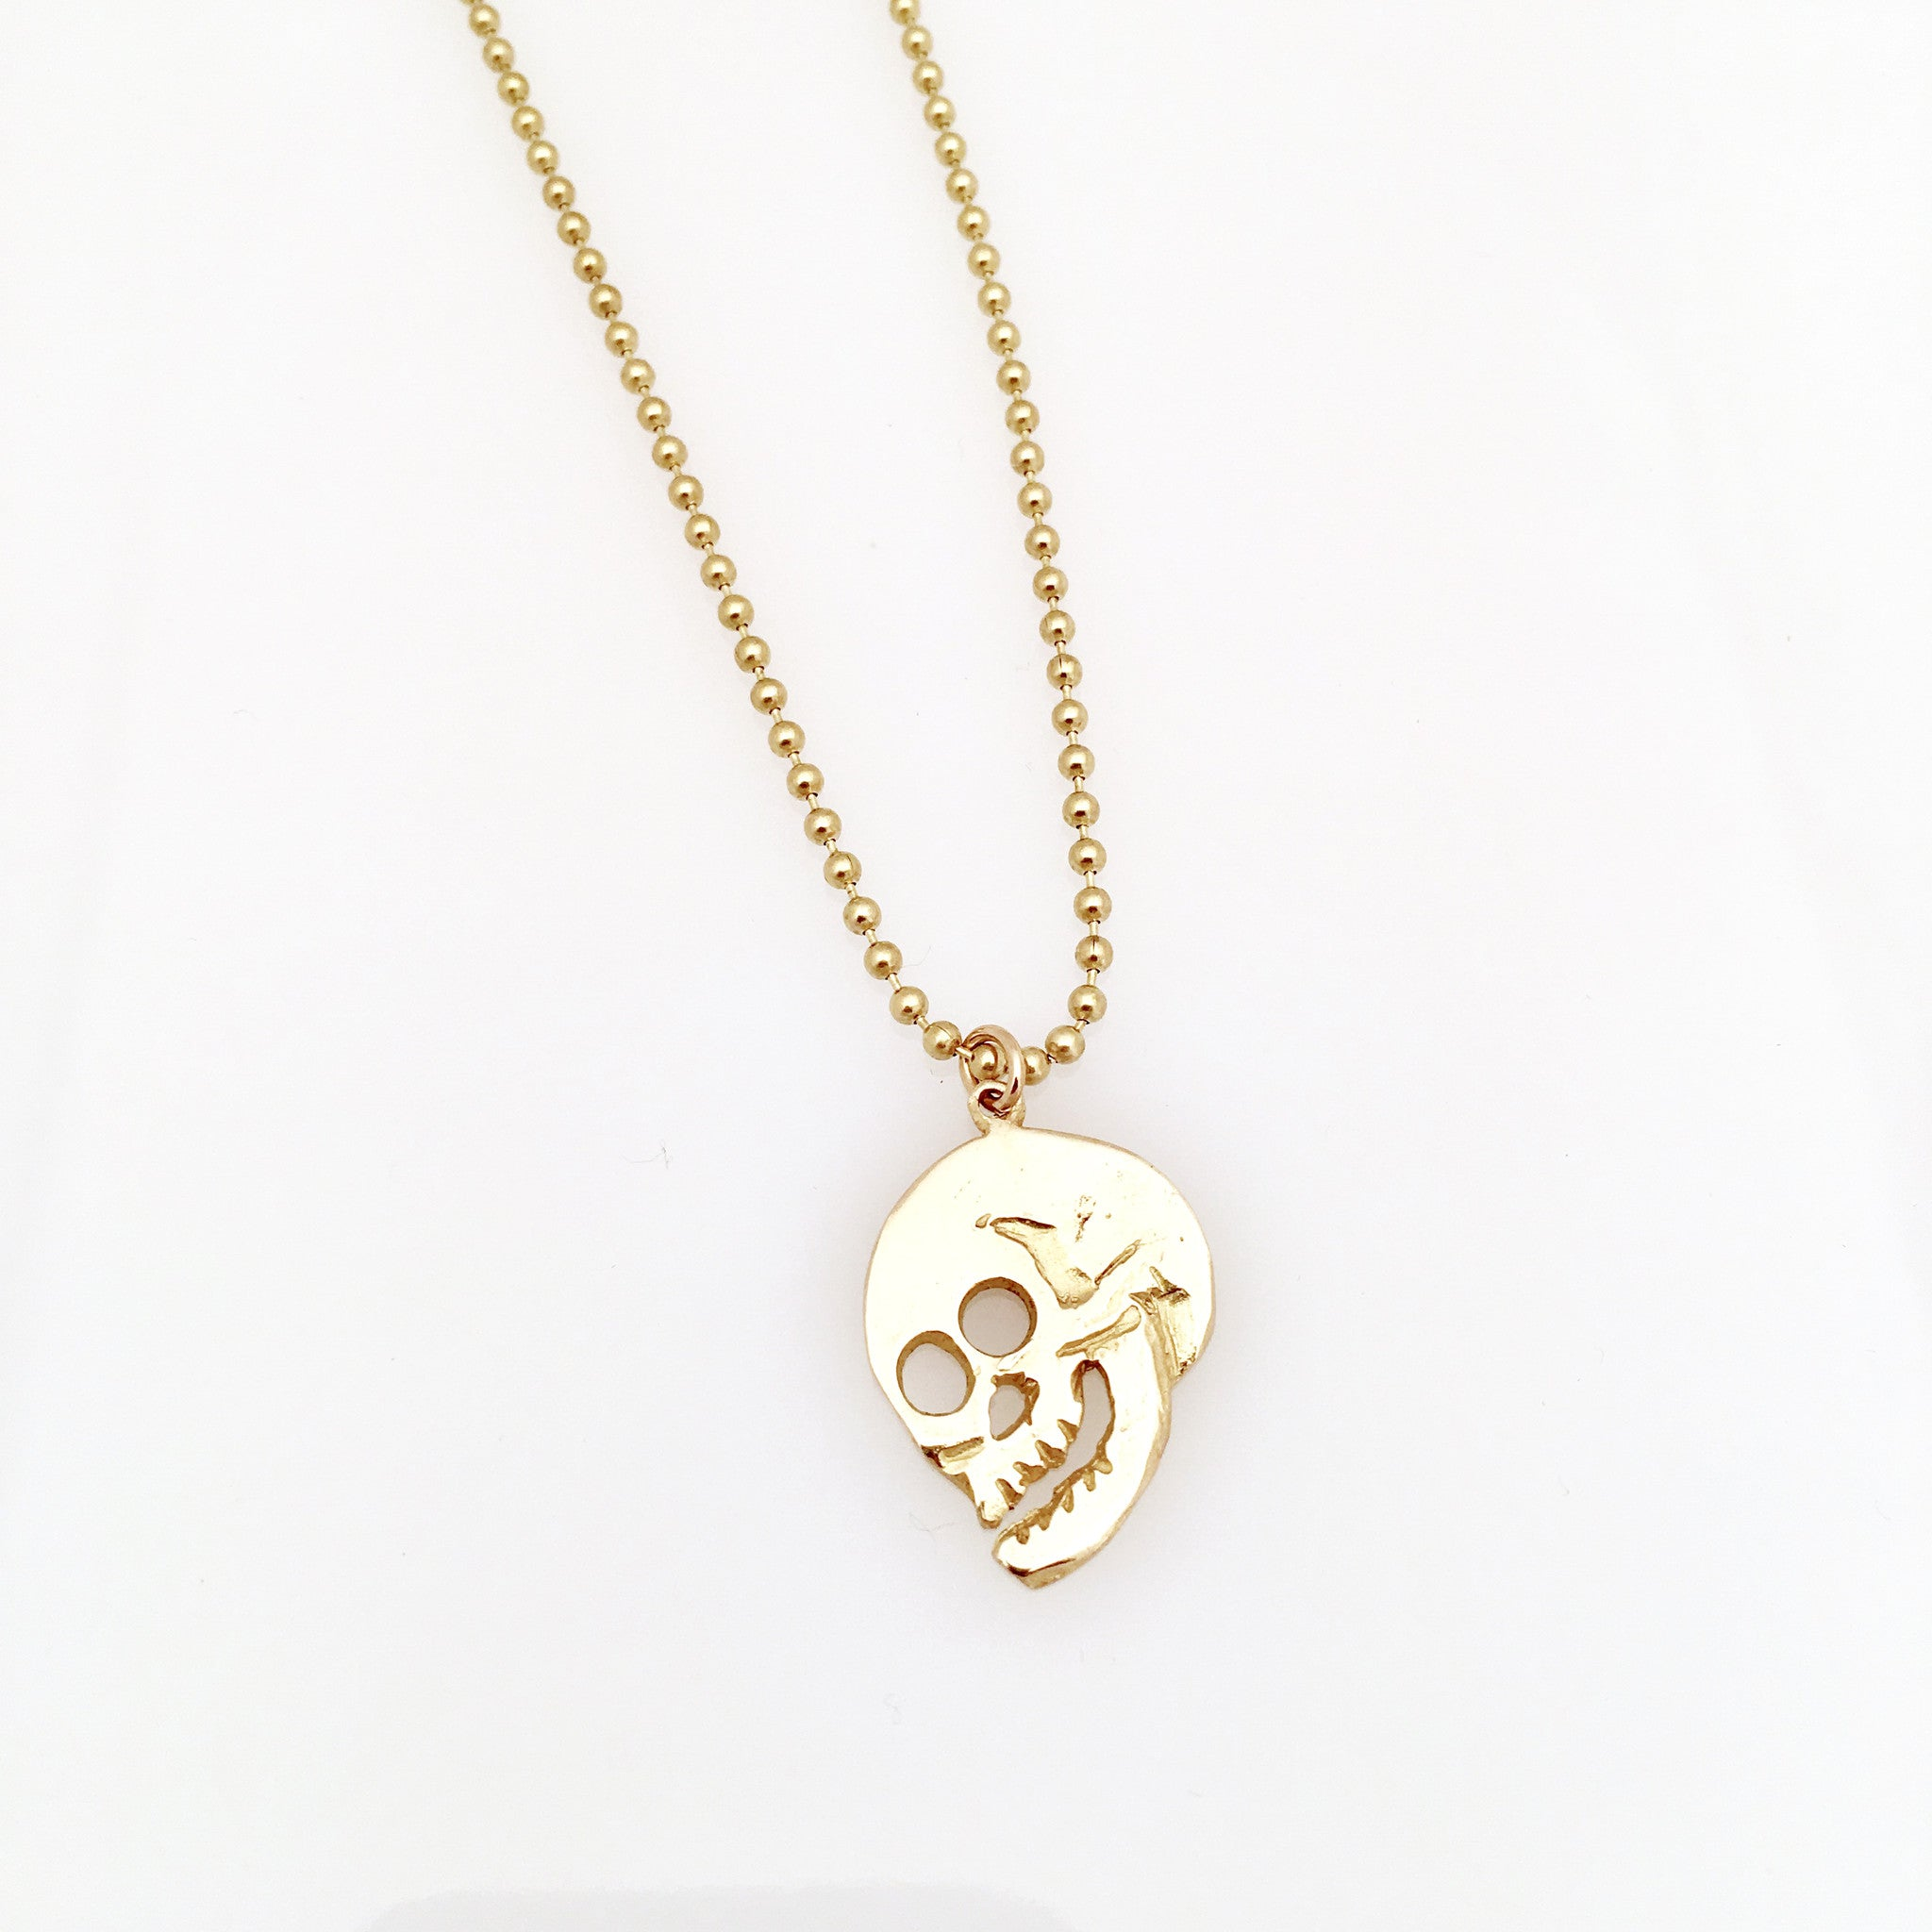 handmade brass skull necklace